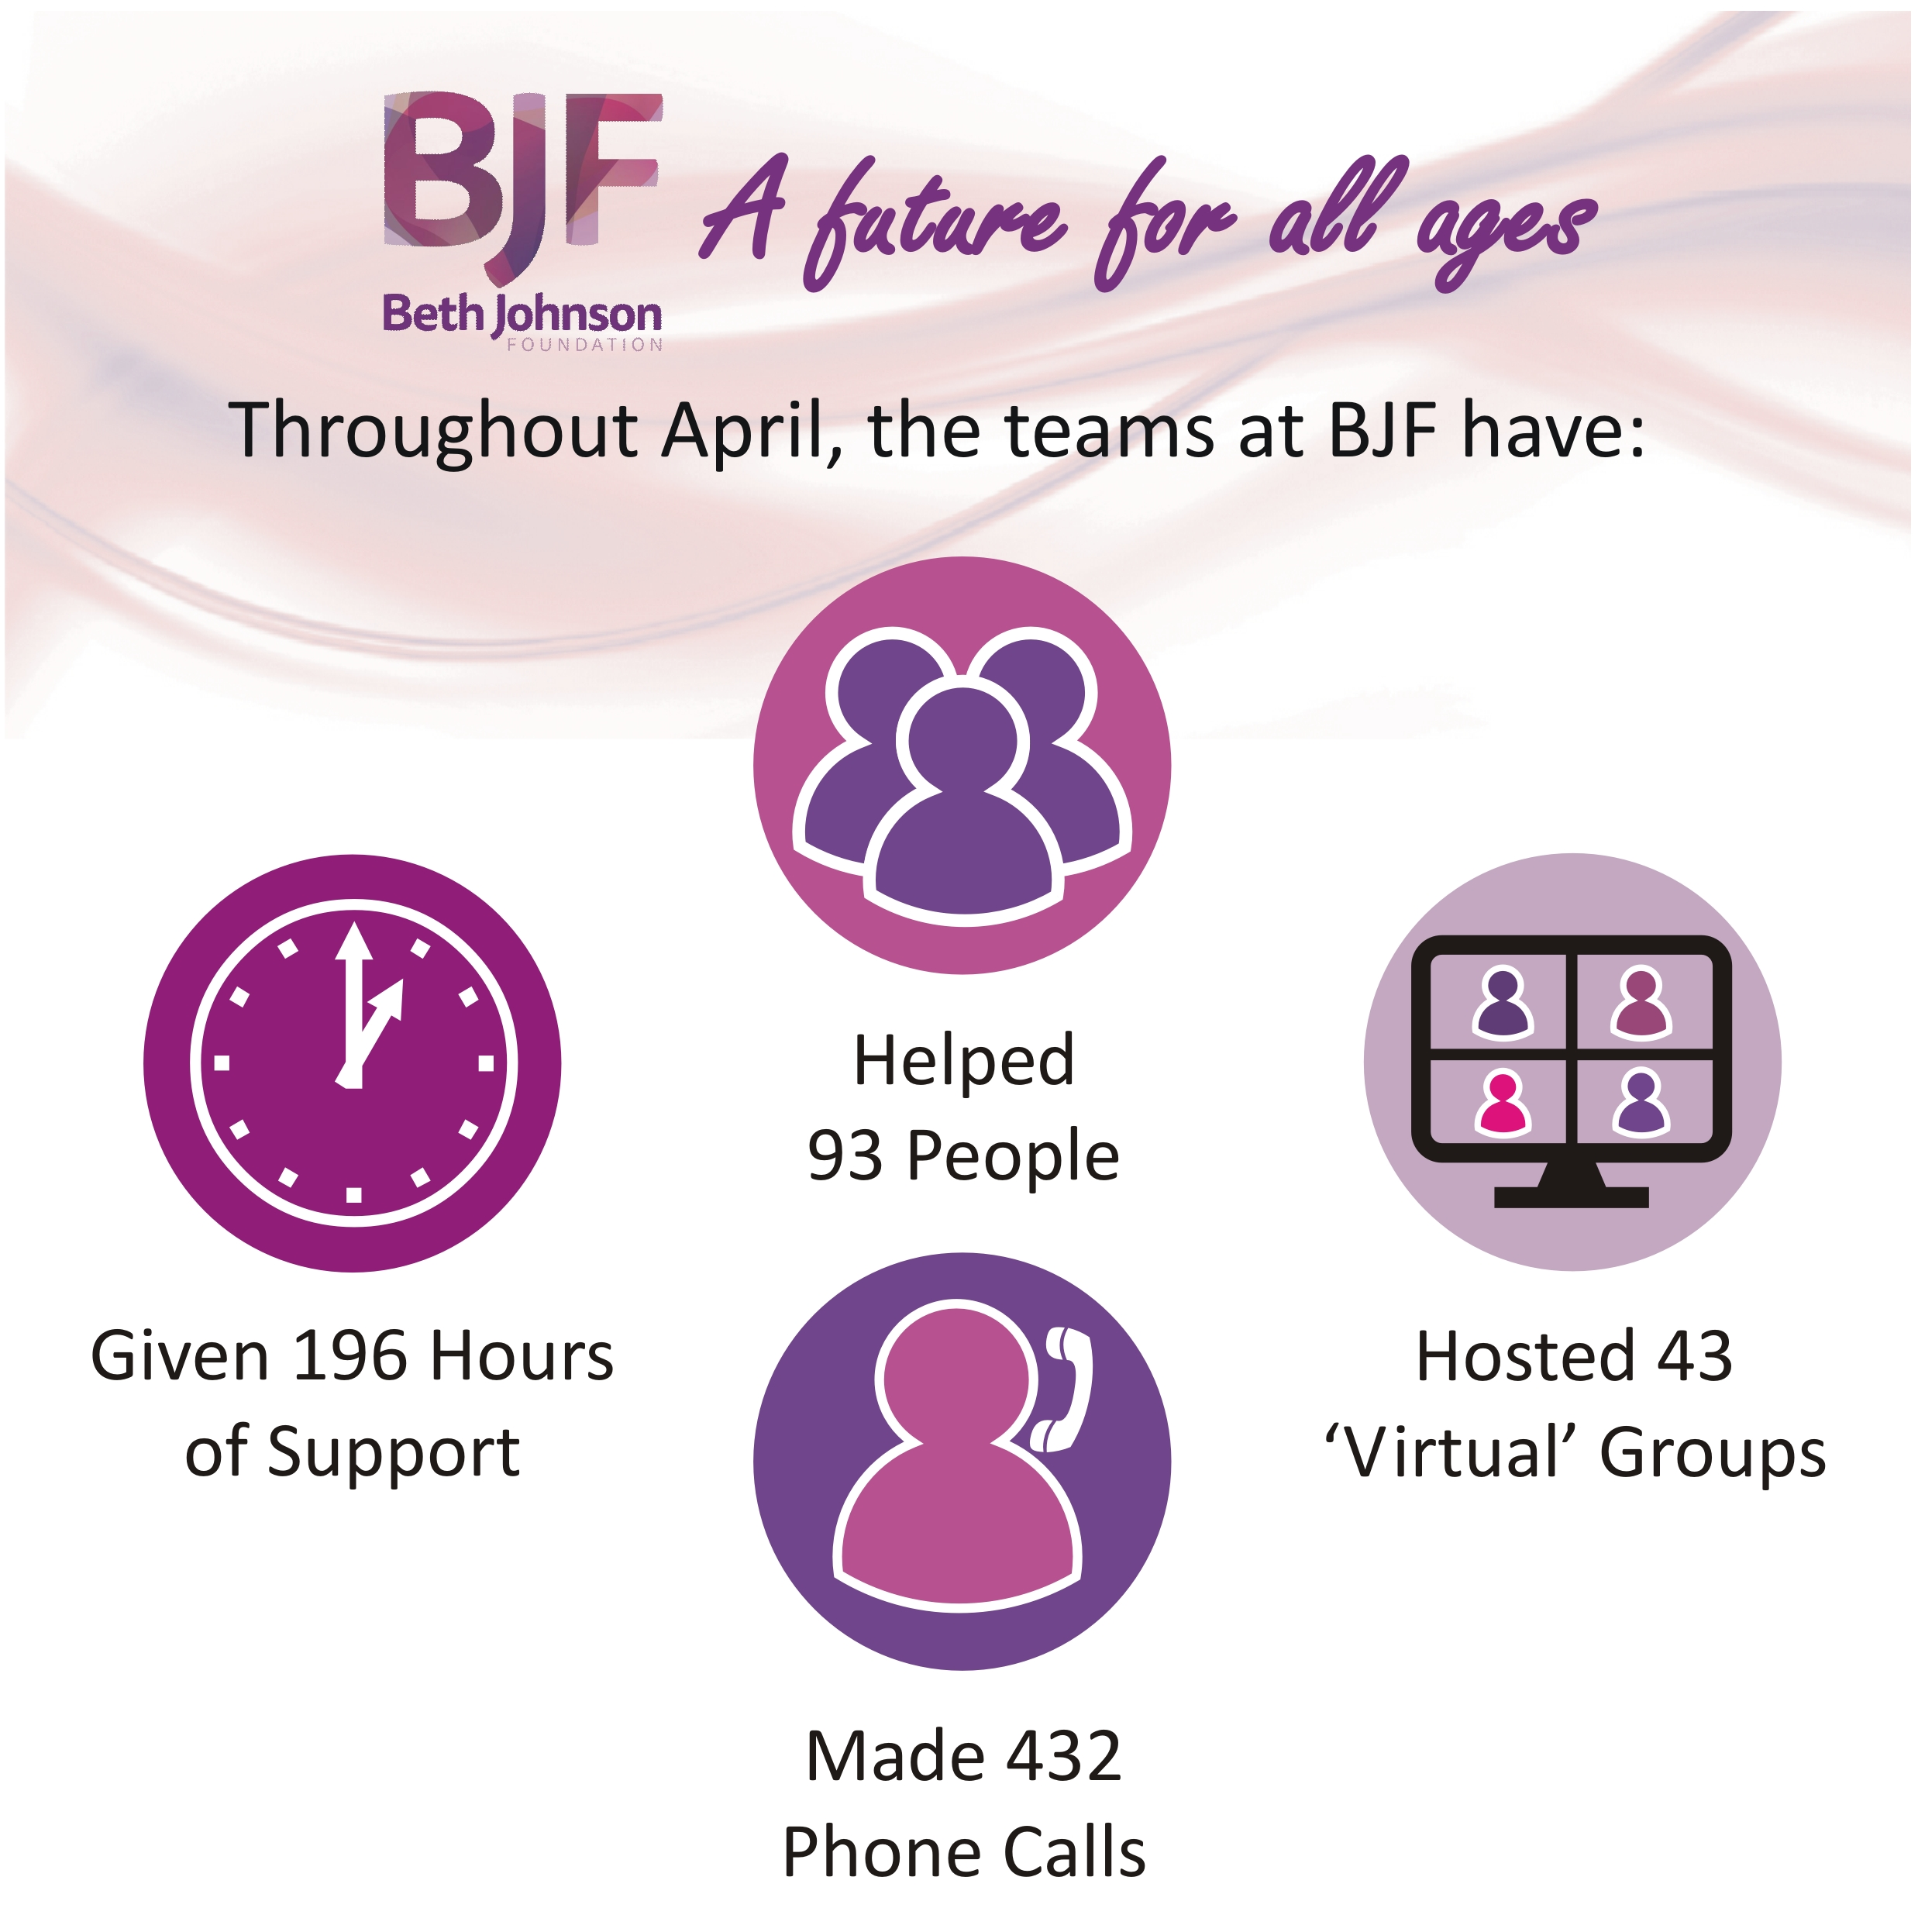 BJF Infographic April 2021